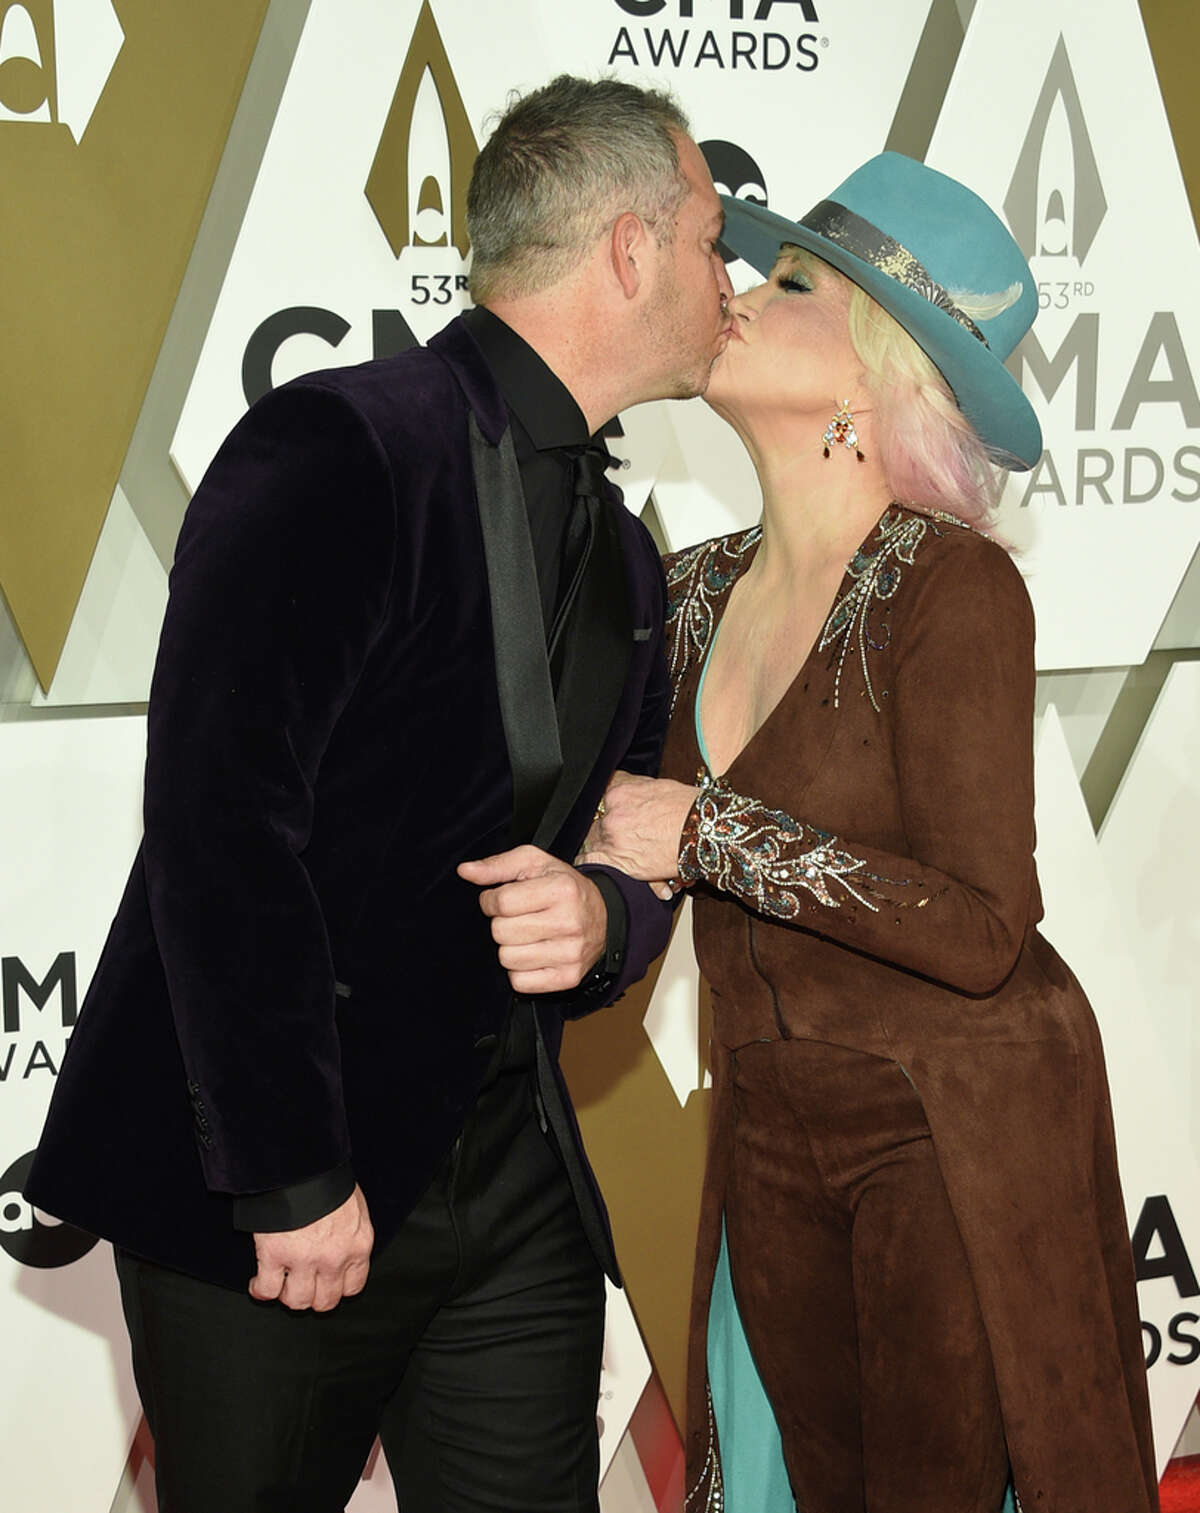 Buddy Quaid, left, and Tanya Tucker kiss at the 53rd annual CMA Awards at Bridgestone Arena on Wednesday, Nov. 13, 2019, in Nashville, Tenn. (Photo by Evan Agostini/Invision/AP)